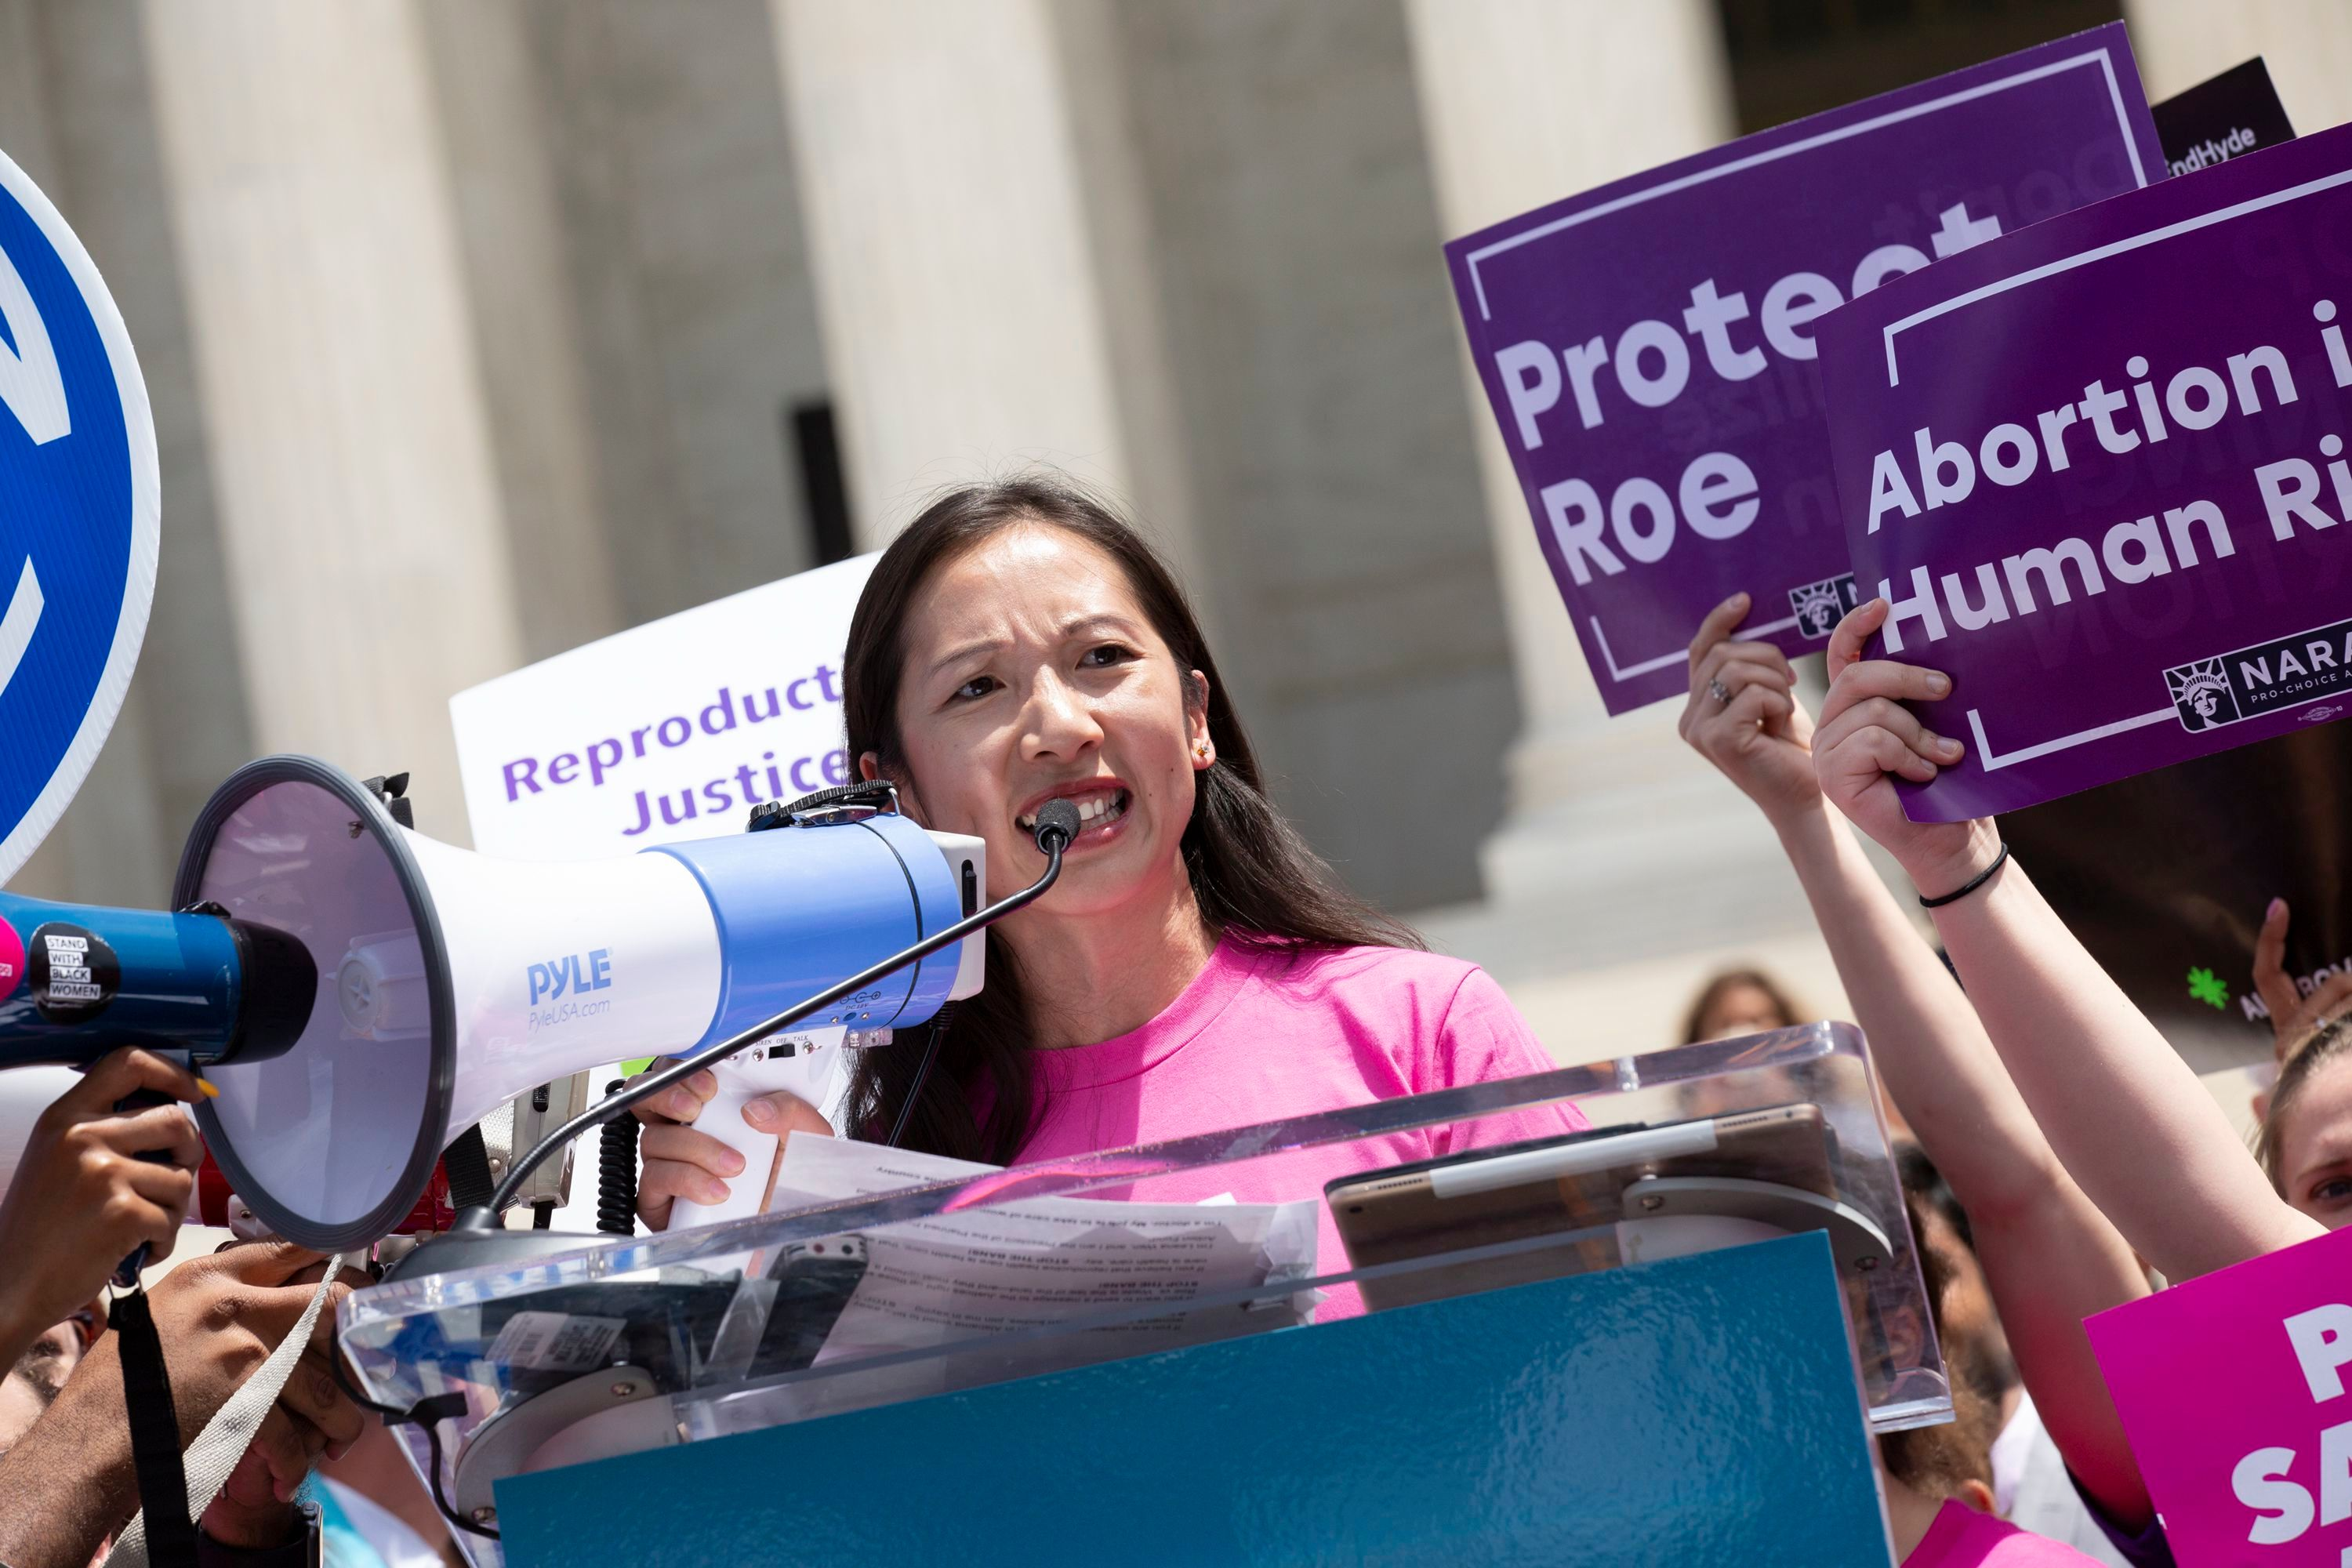 Ousted Planned Parenthood CEO Dr. Leana Wen Cites 'Philosophical Differences'